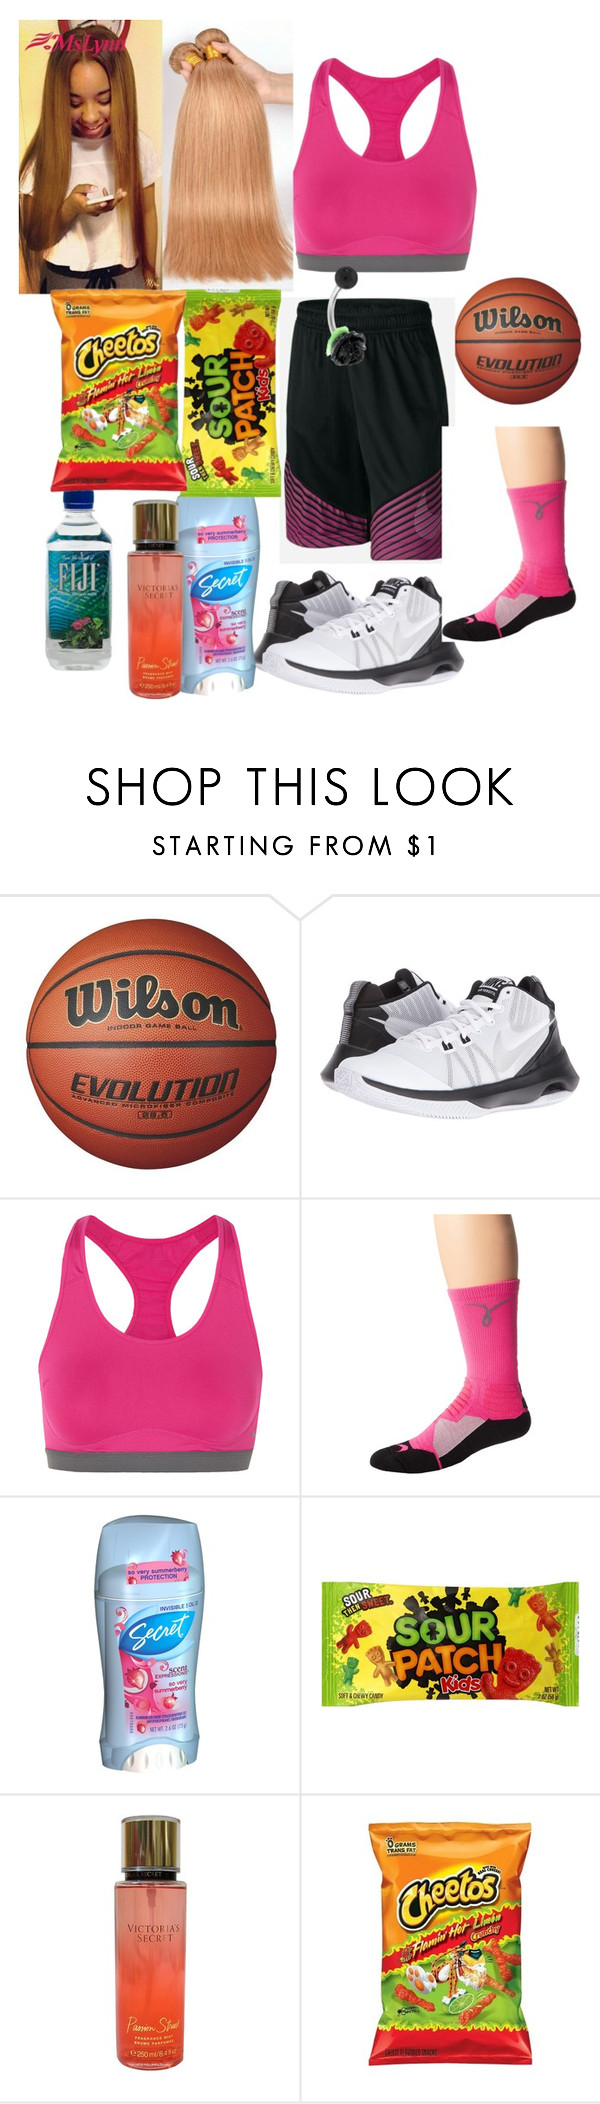 """Untitled #198"" by princesskissbonilla ❤ liked on Polyvore featuring NIKE, Secret and Victoria's Secret"